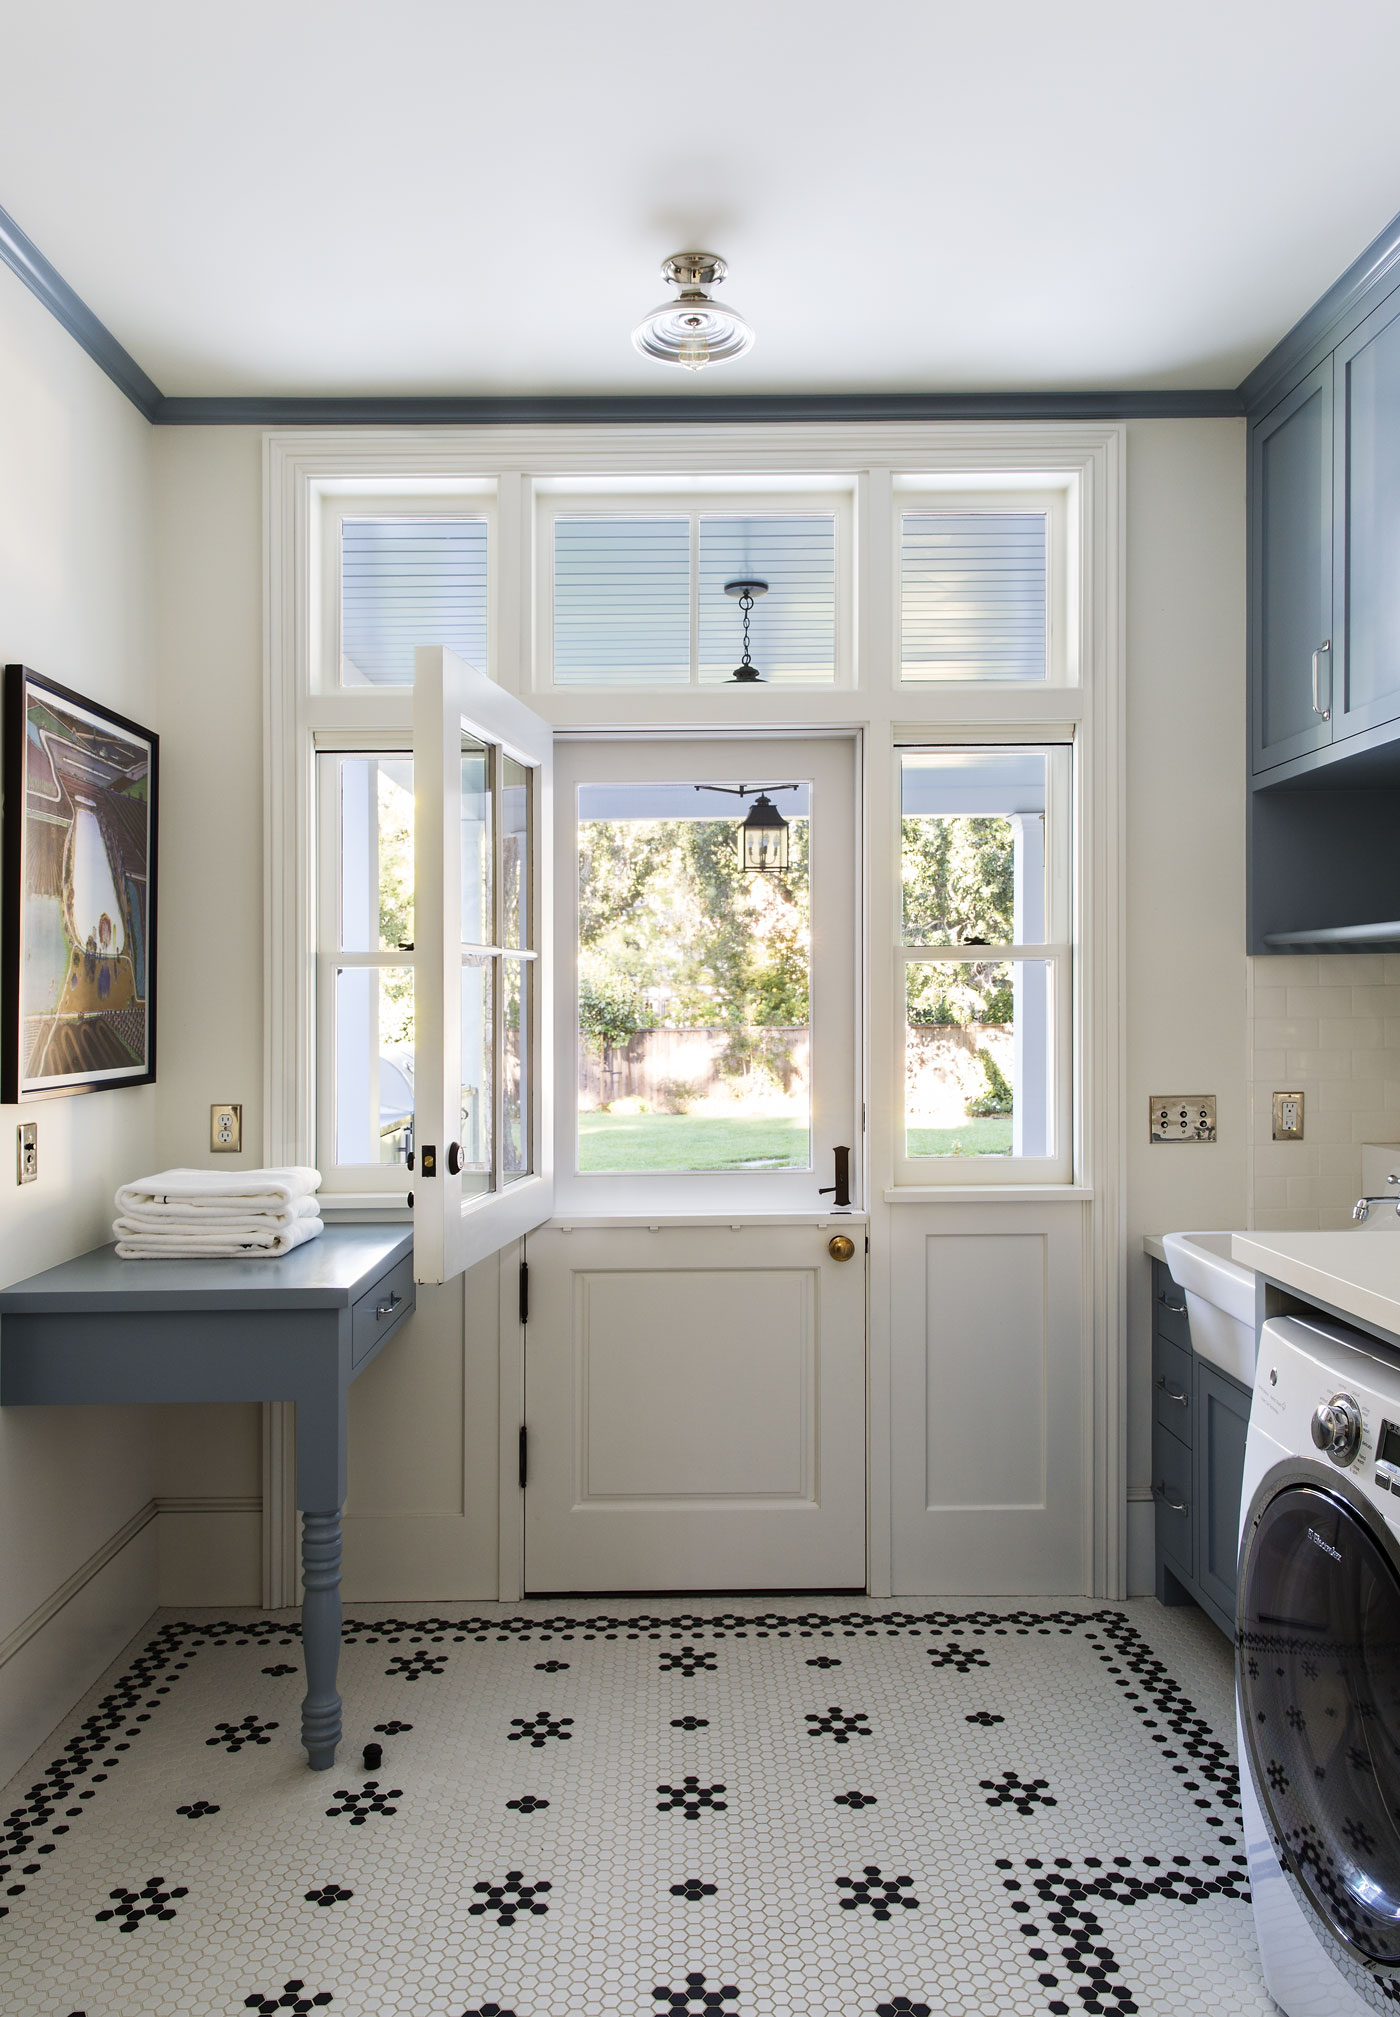 Laundry Room in a New Tennessee-Style Farmhouse by Tim Barber Ltd.